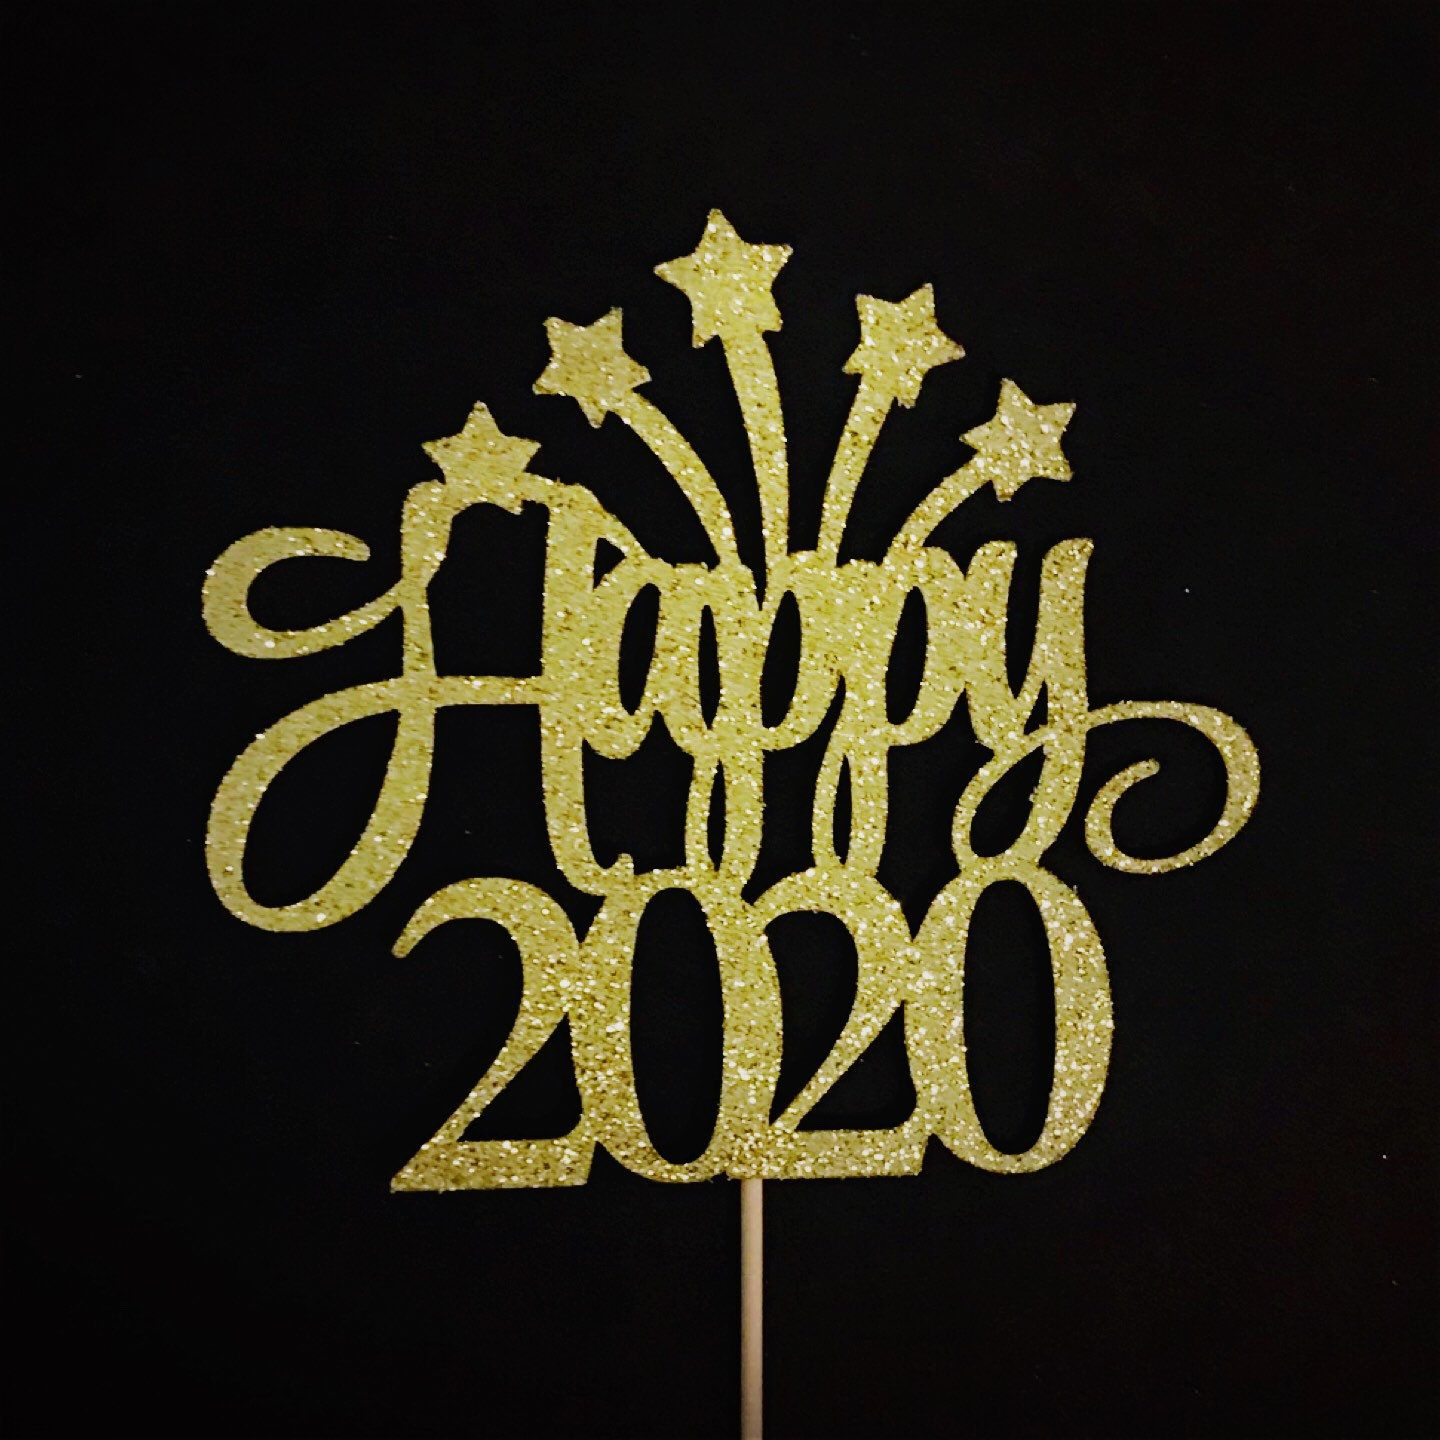 Happy 2020 Cake Topper, New Year Party Cake Topper, New